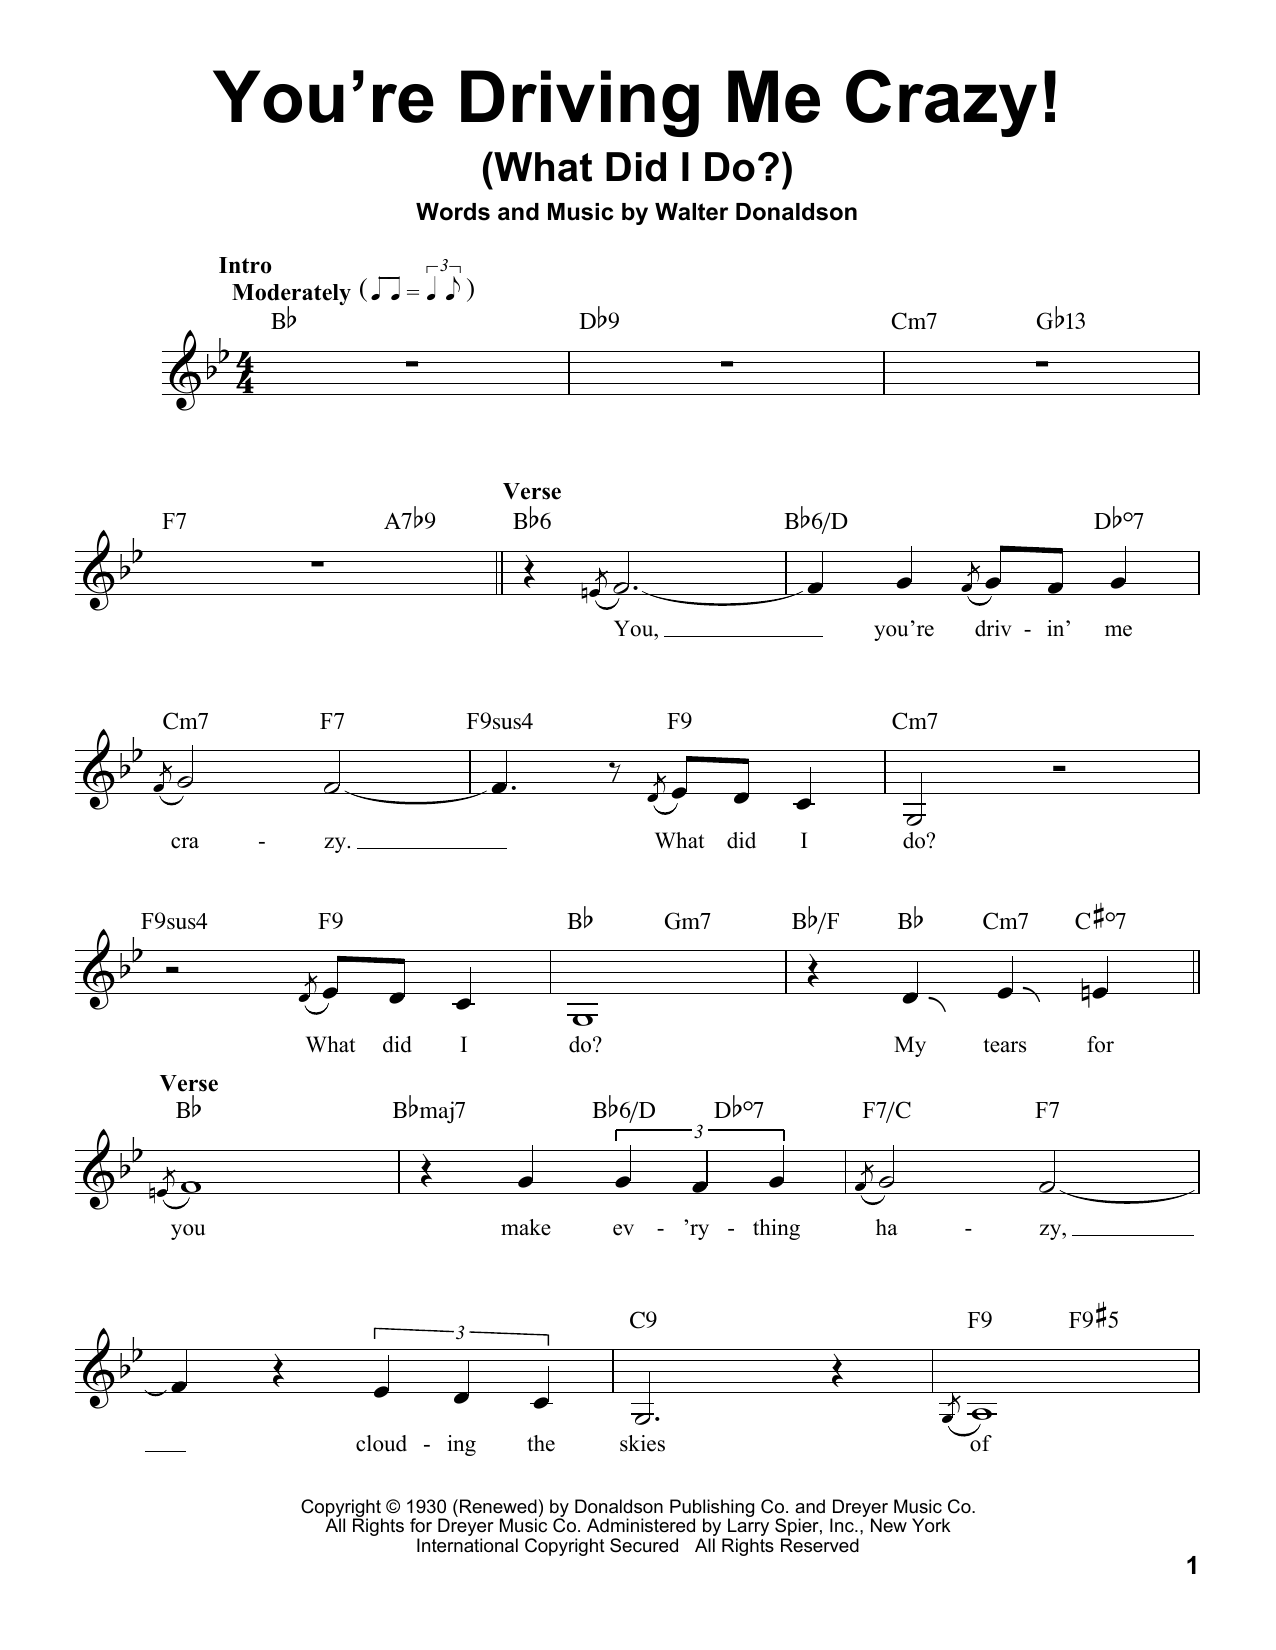 You're Driving Me Crazy! (What Did I Do?) Sheet Music